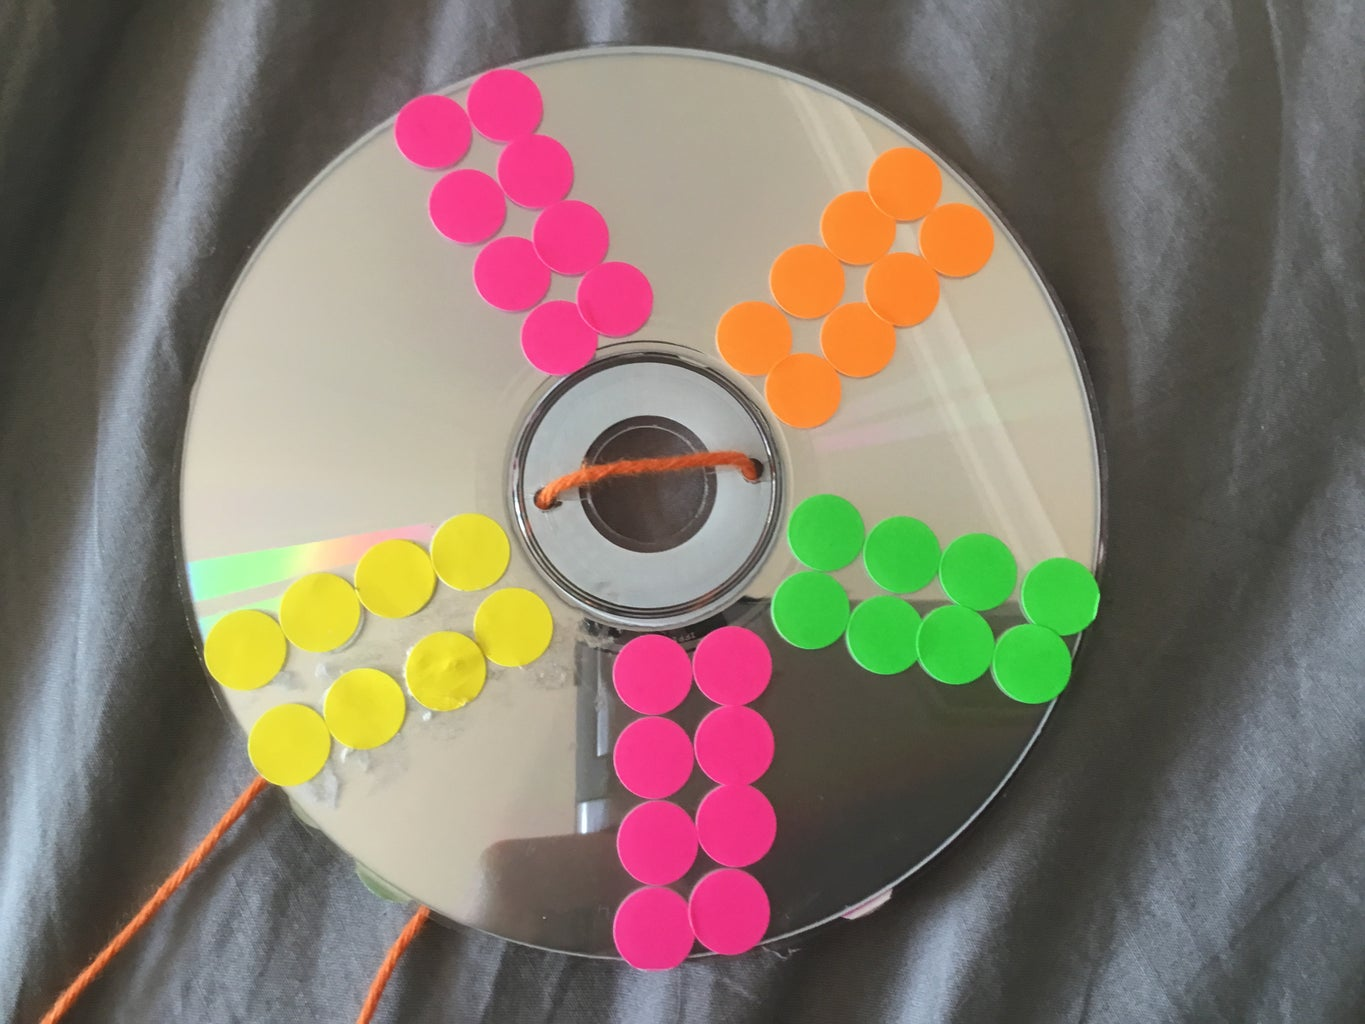 Attaching the String to the Cd.